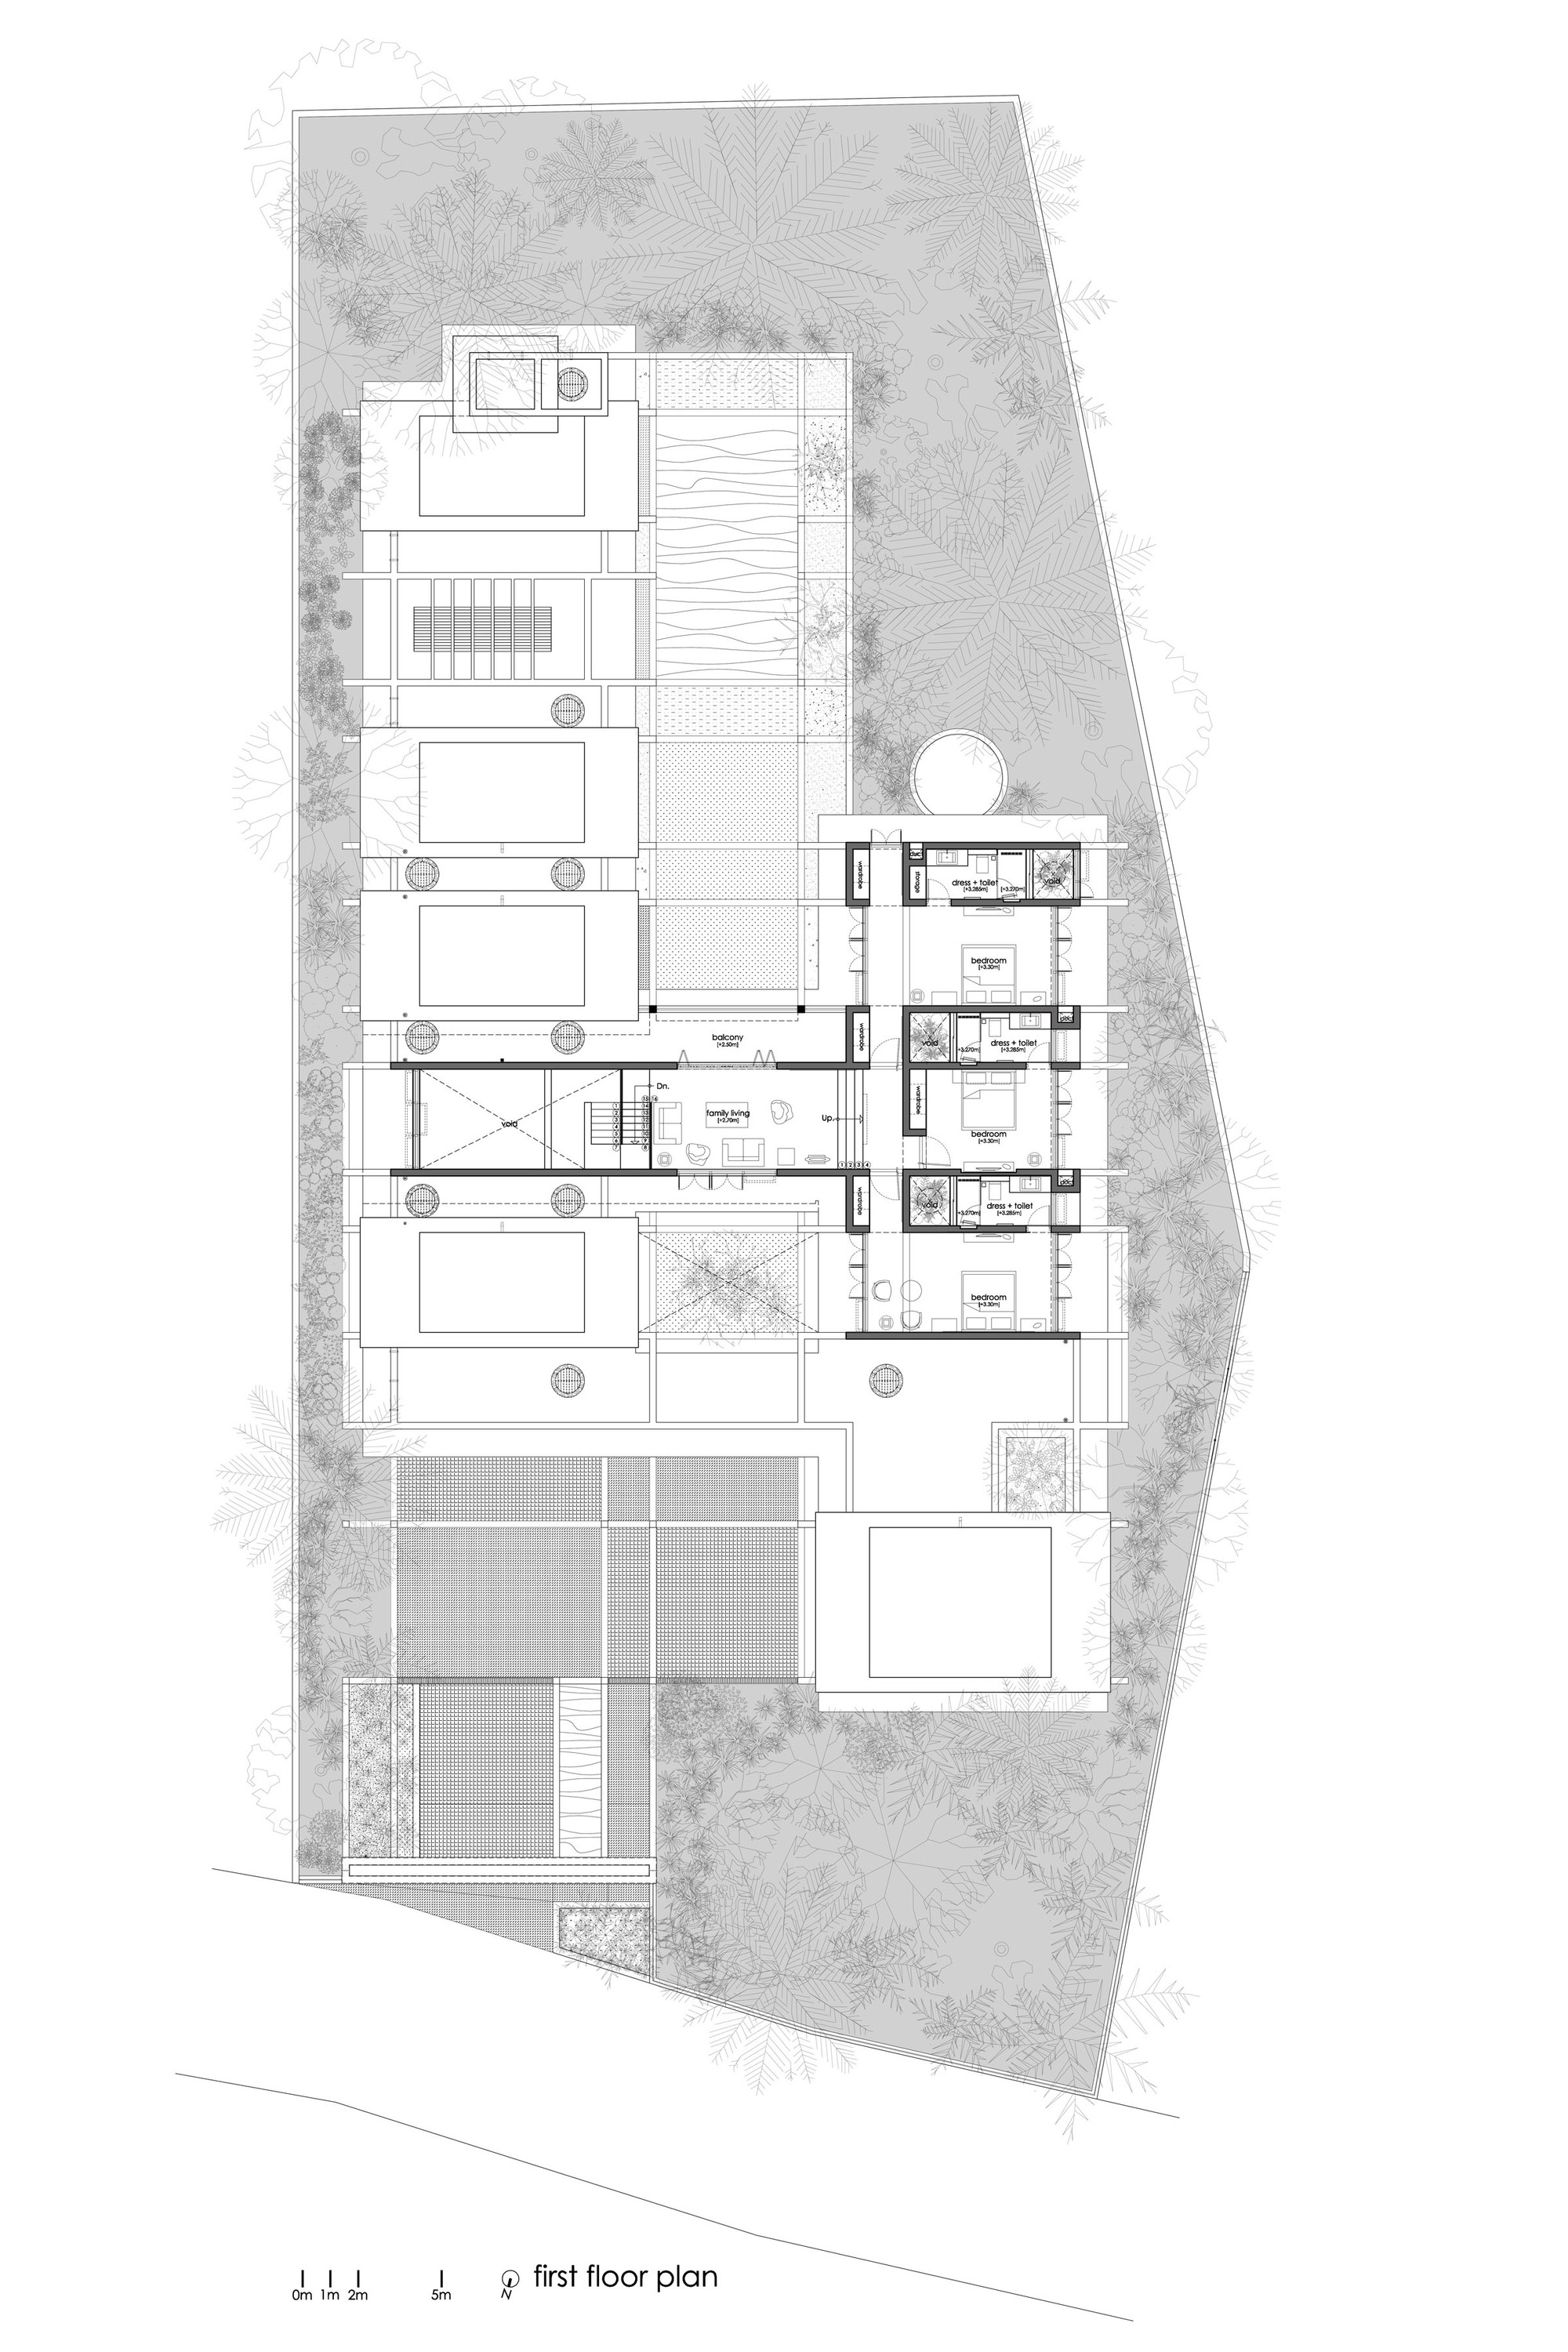 m2 _b02_The_HG_-_First_Floor_Plan_With_Trees.jpg